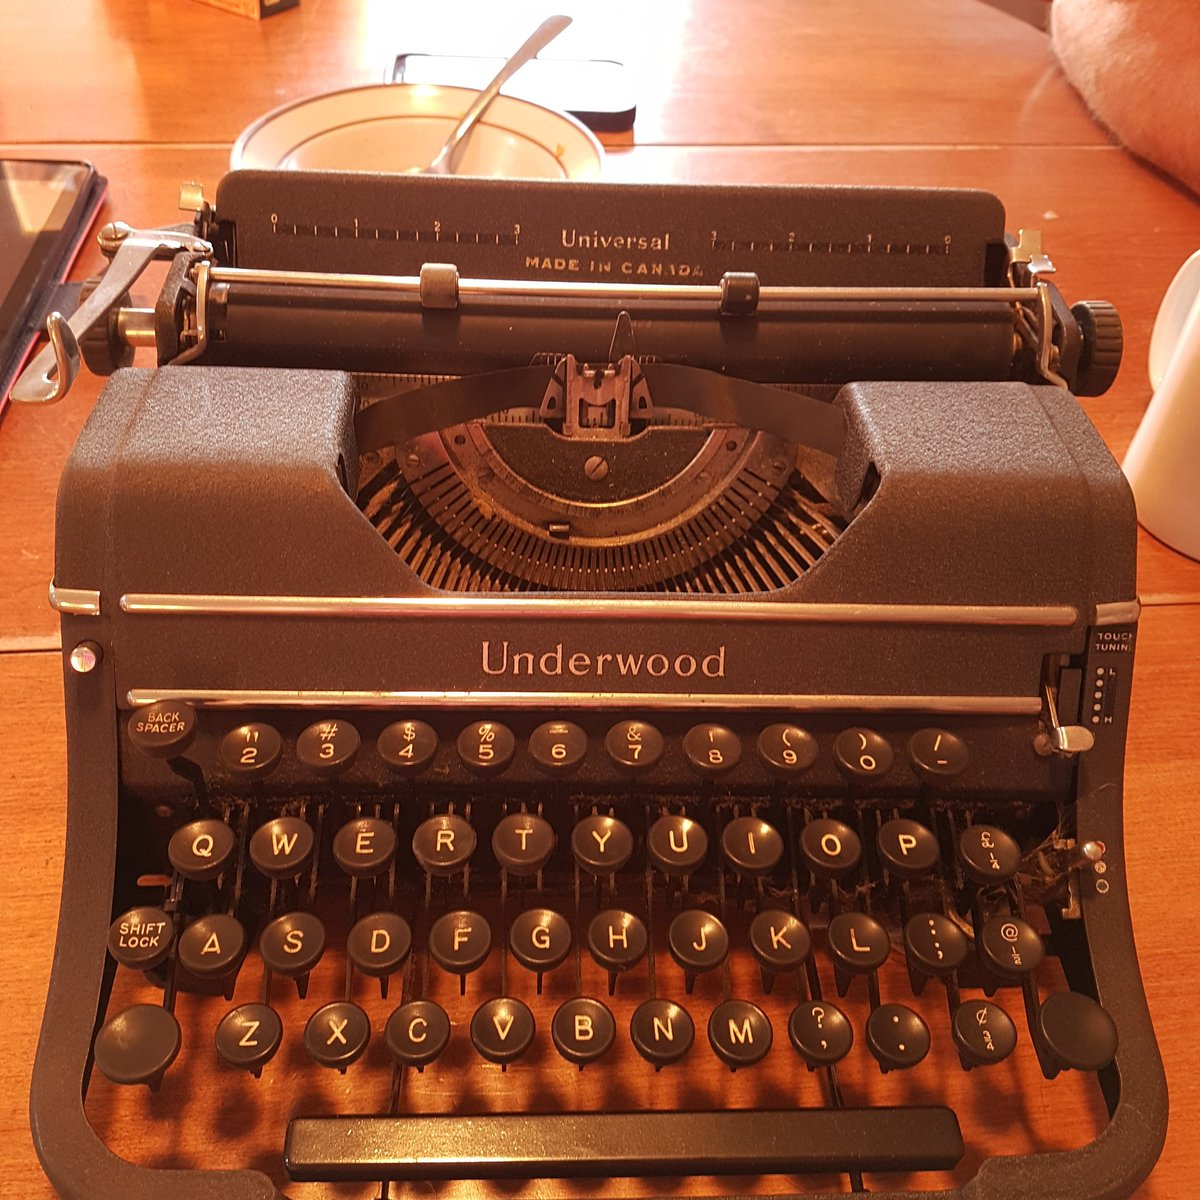 Would you look at that, we have a type writer #ancient #antique <br>http://pic.twitter.com/sJwIsWLITR